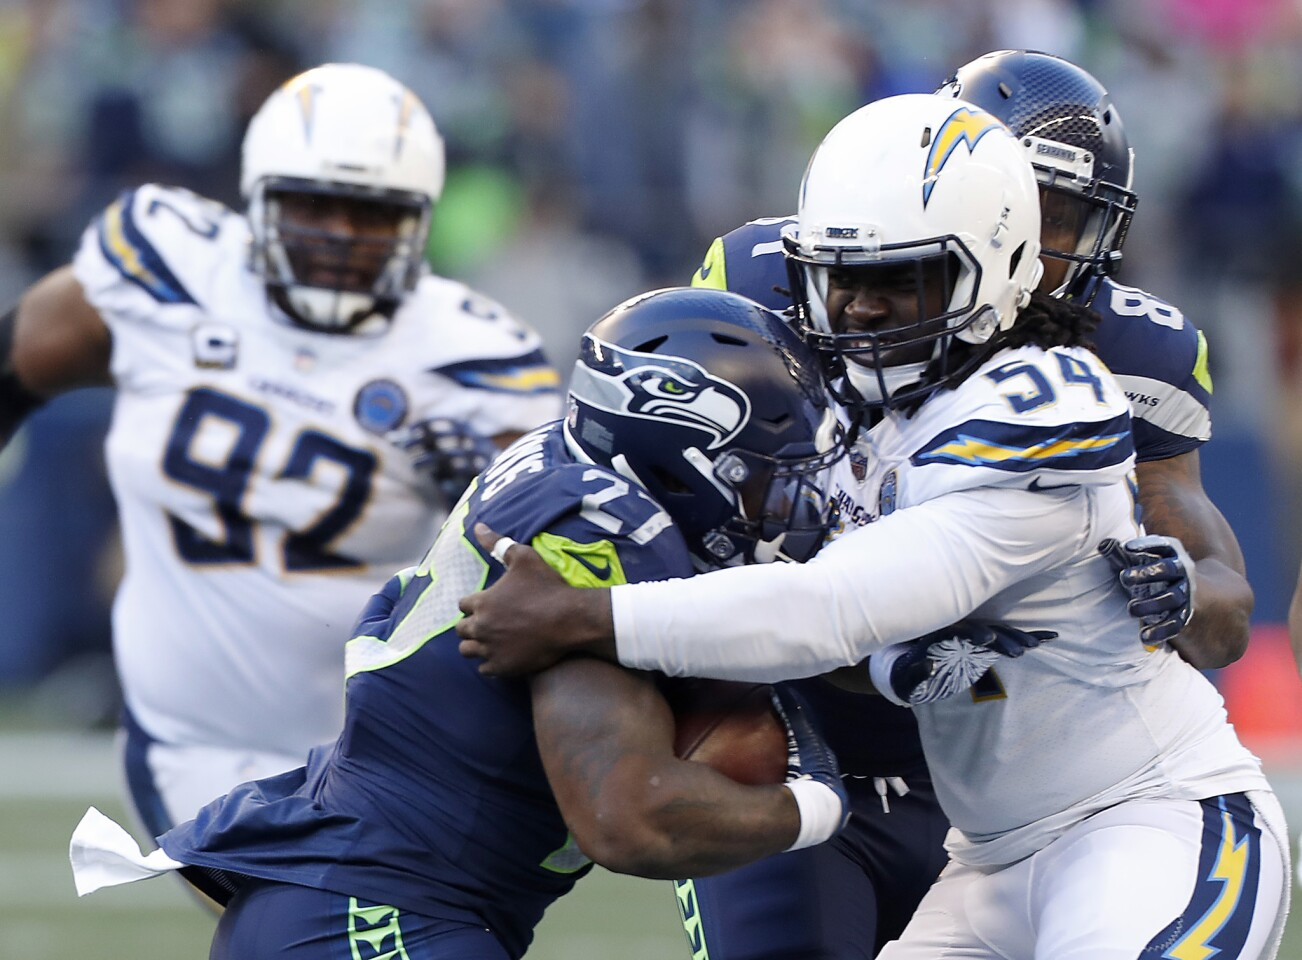 Chargers defensive end Melvin Ingram III wraps up Seattle Seahawks running back Mike Davis in the third quarter Sunday at Century Link Field in Seattle.